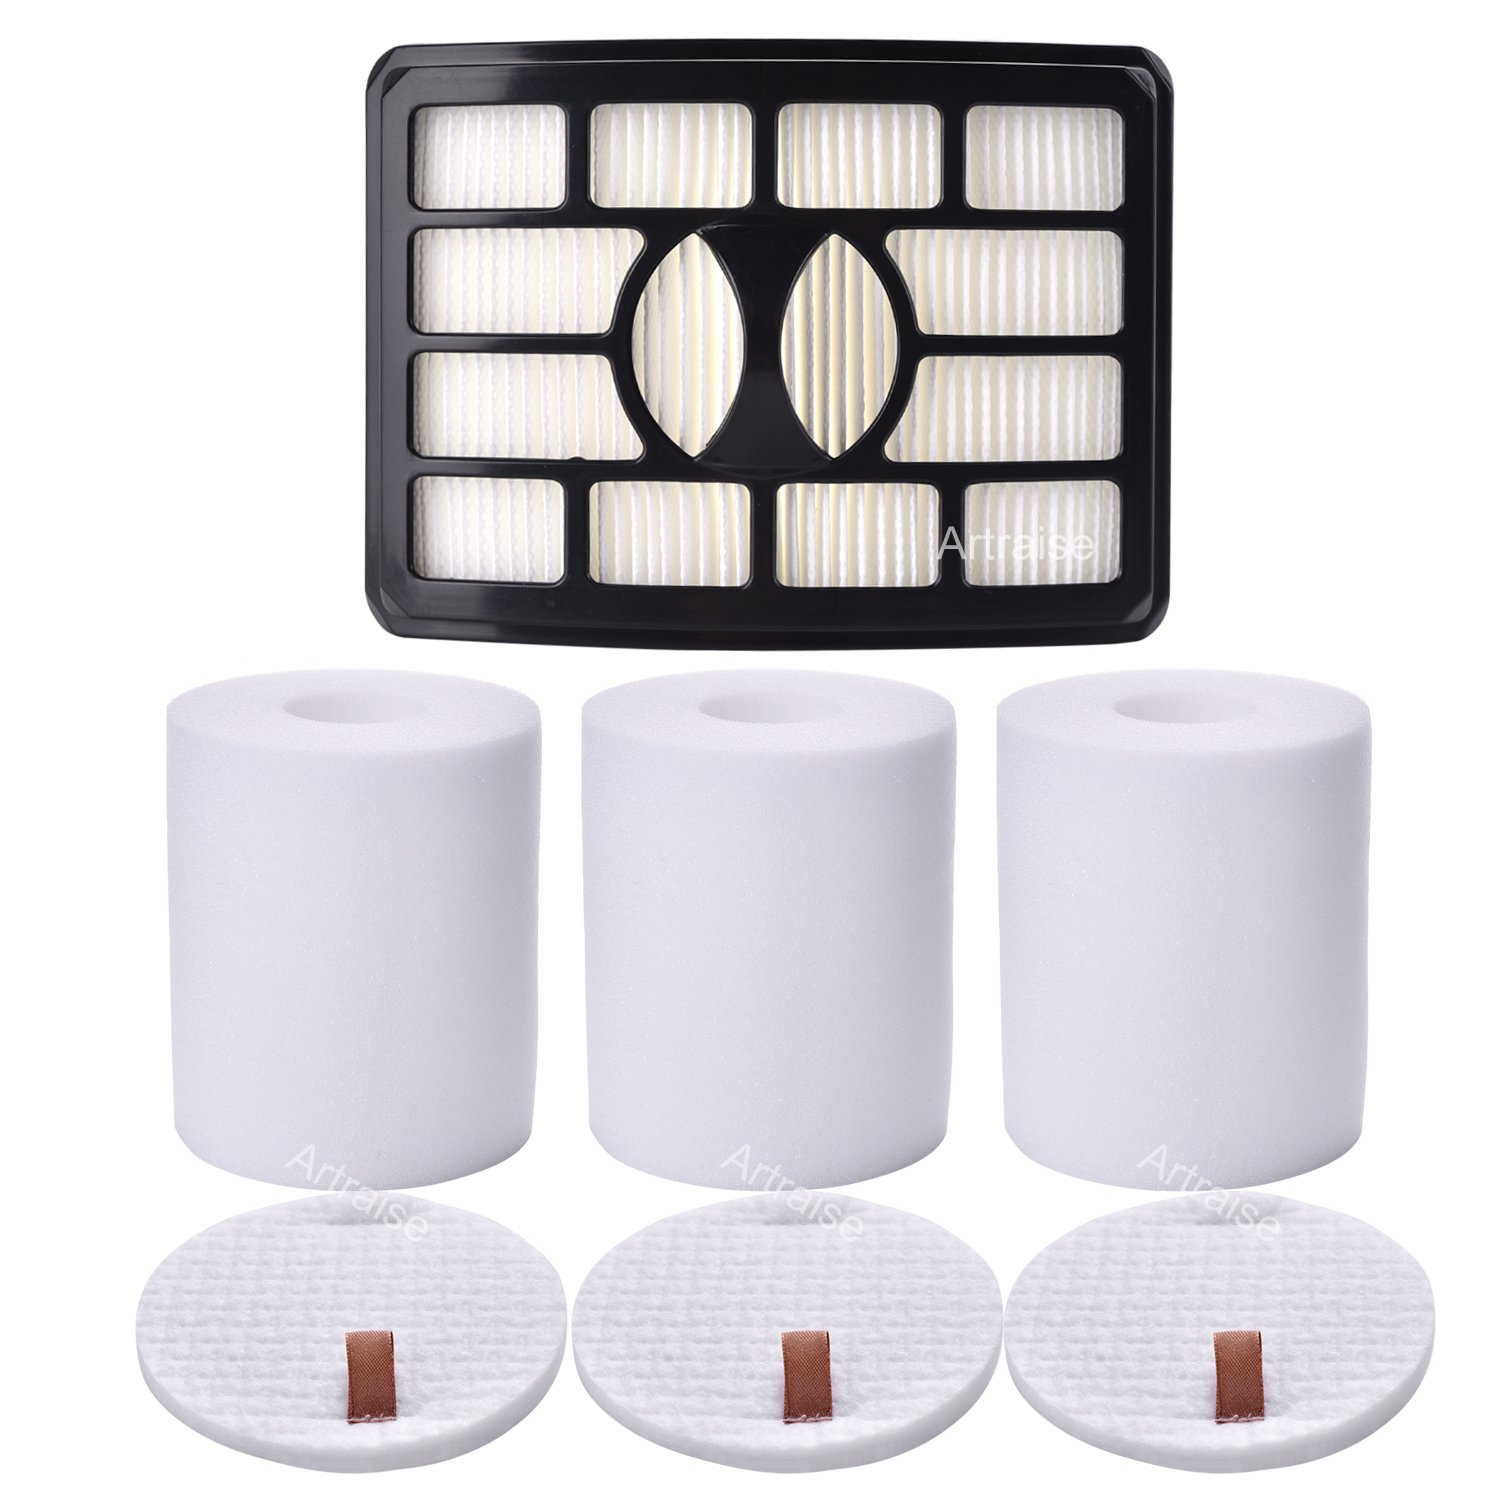 3 Pack Filters for Shark Rotator Pro Lift-away NV500, NV501, NV502, NV503, NV505, NV510, NV520, NV552, UV560, Xff500 Xhf500 (Not Fits NV650,NV680,NV750 Series) By Artraise by Artraise